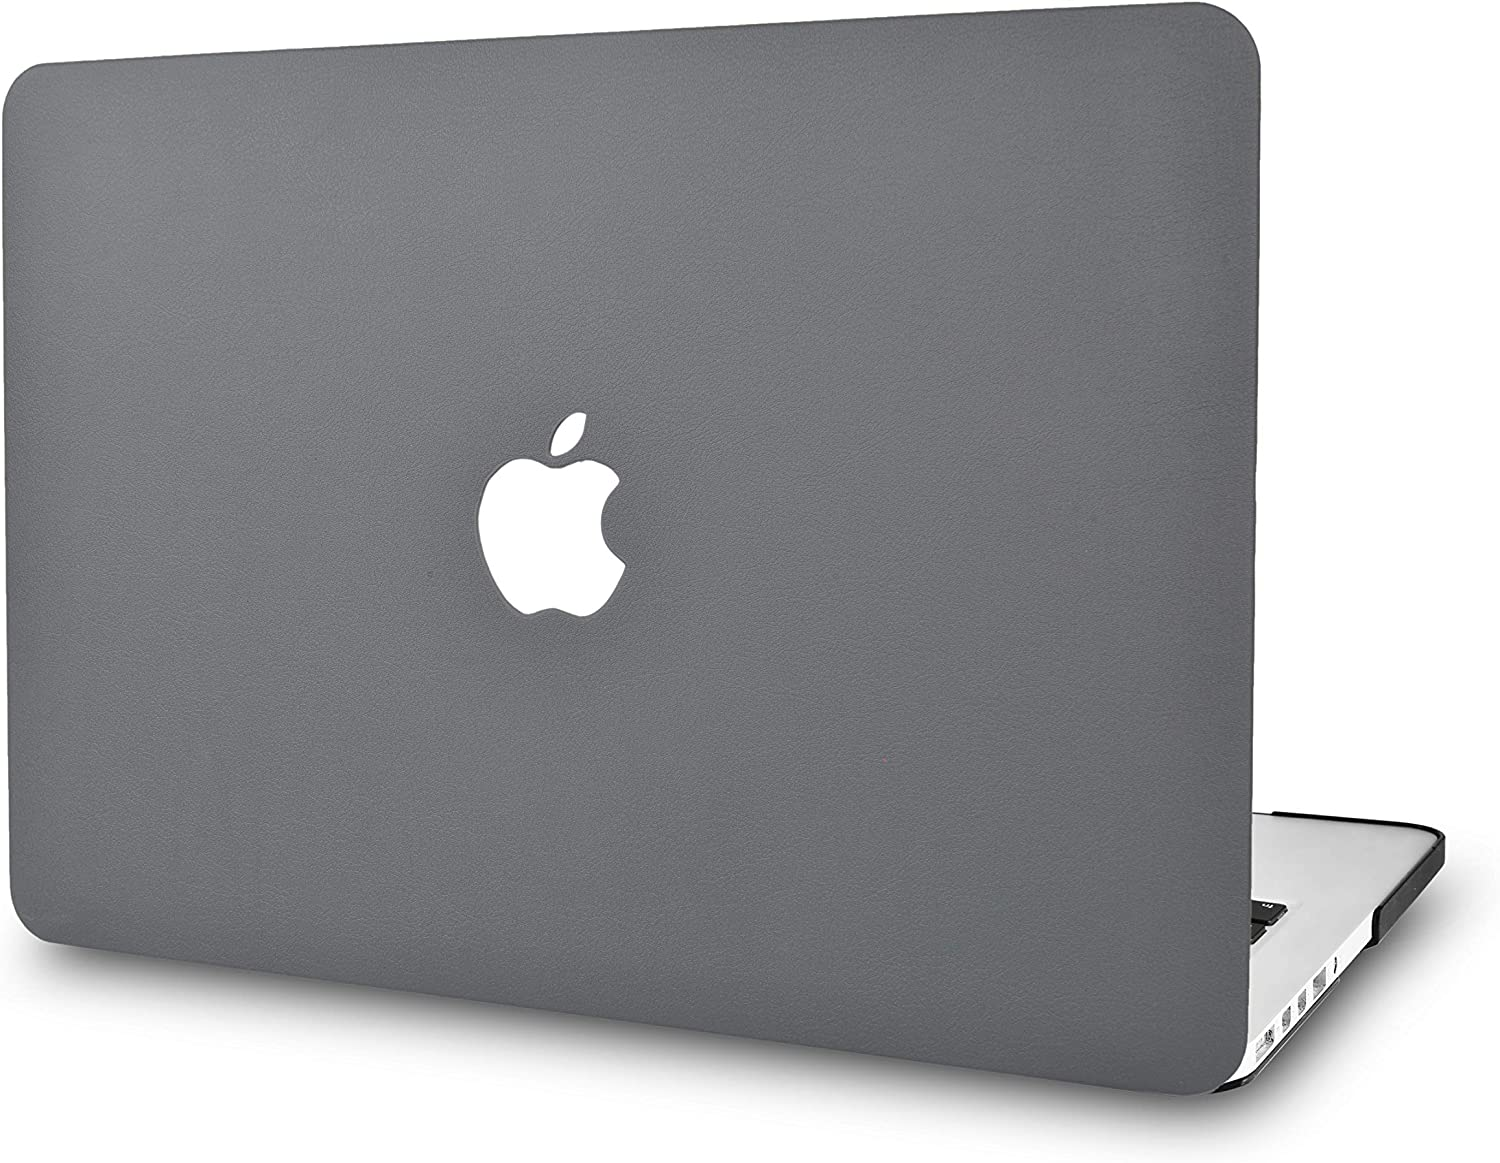 "KECC Laptop Case for Old MacBook Pro 13"" Retina (-2015) Italian Leather Hard Shell Cover A1502 / A1425 (Grey Leather)"